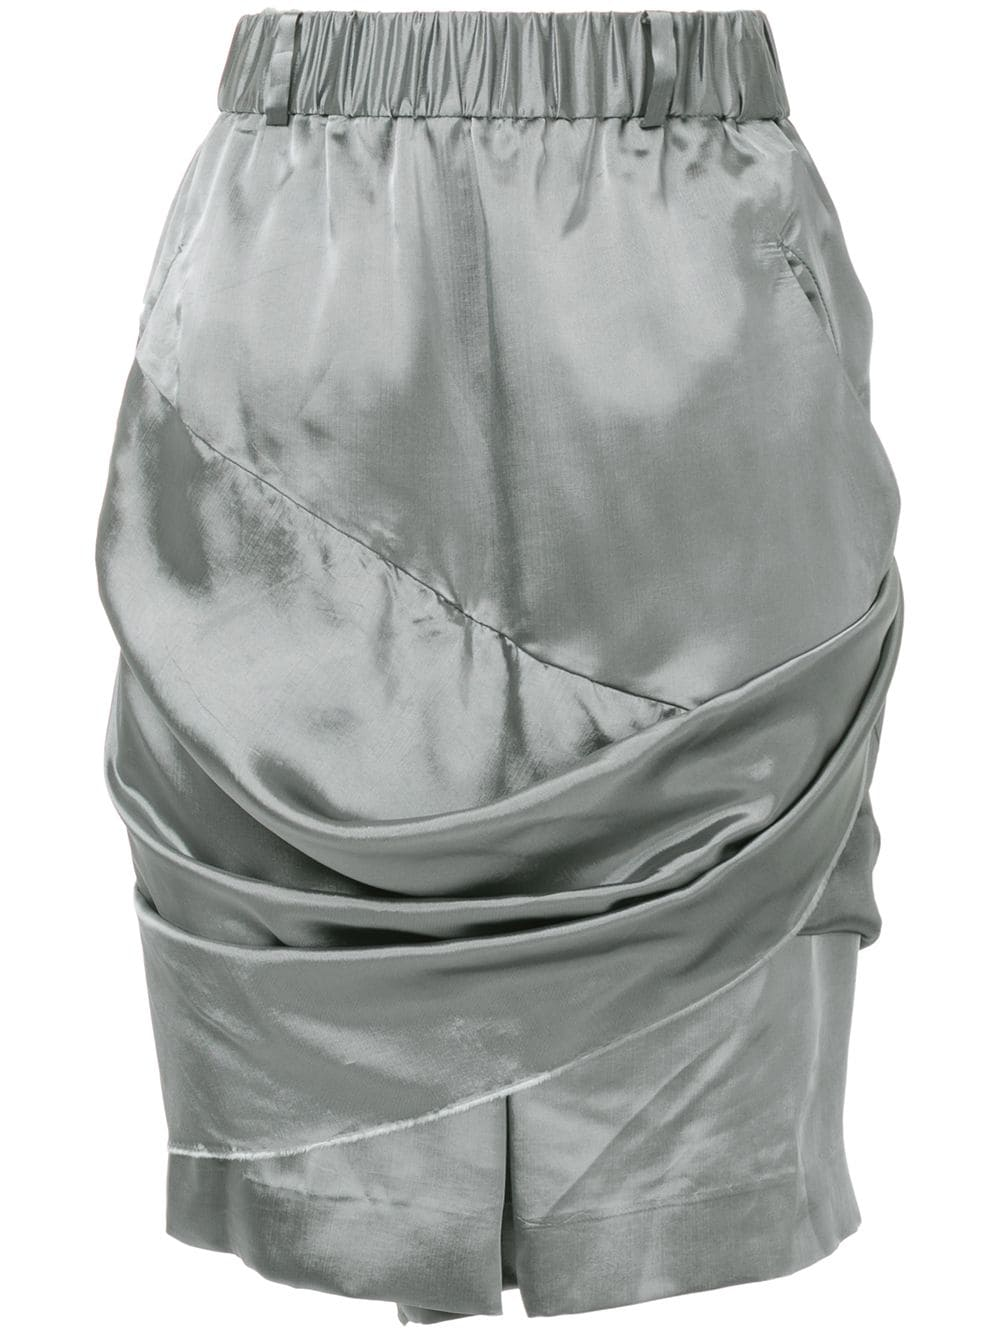 Moohong draped shorts - Metallic von Moohong